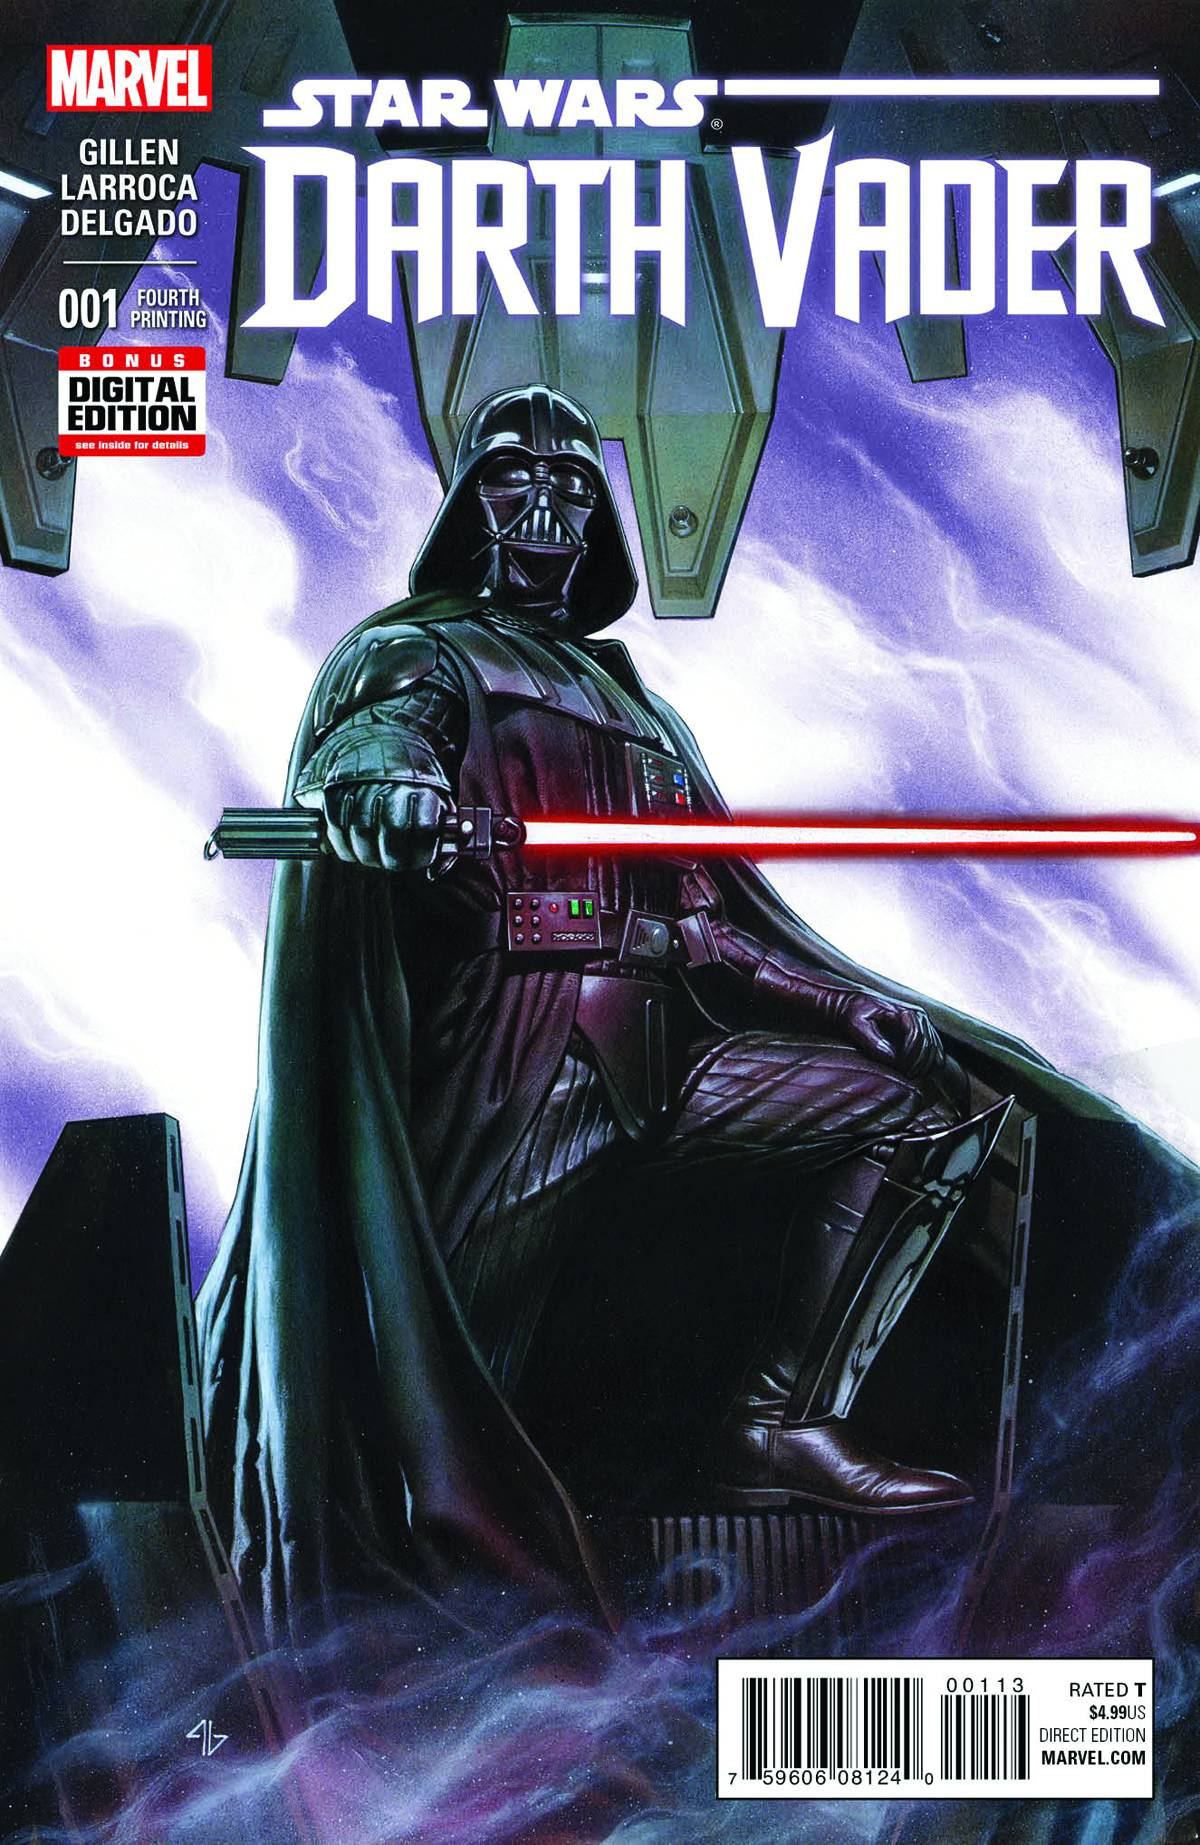 Darth Vader #1 (4th Printing) (08.07.2015)